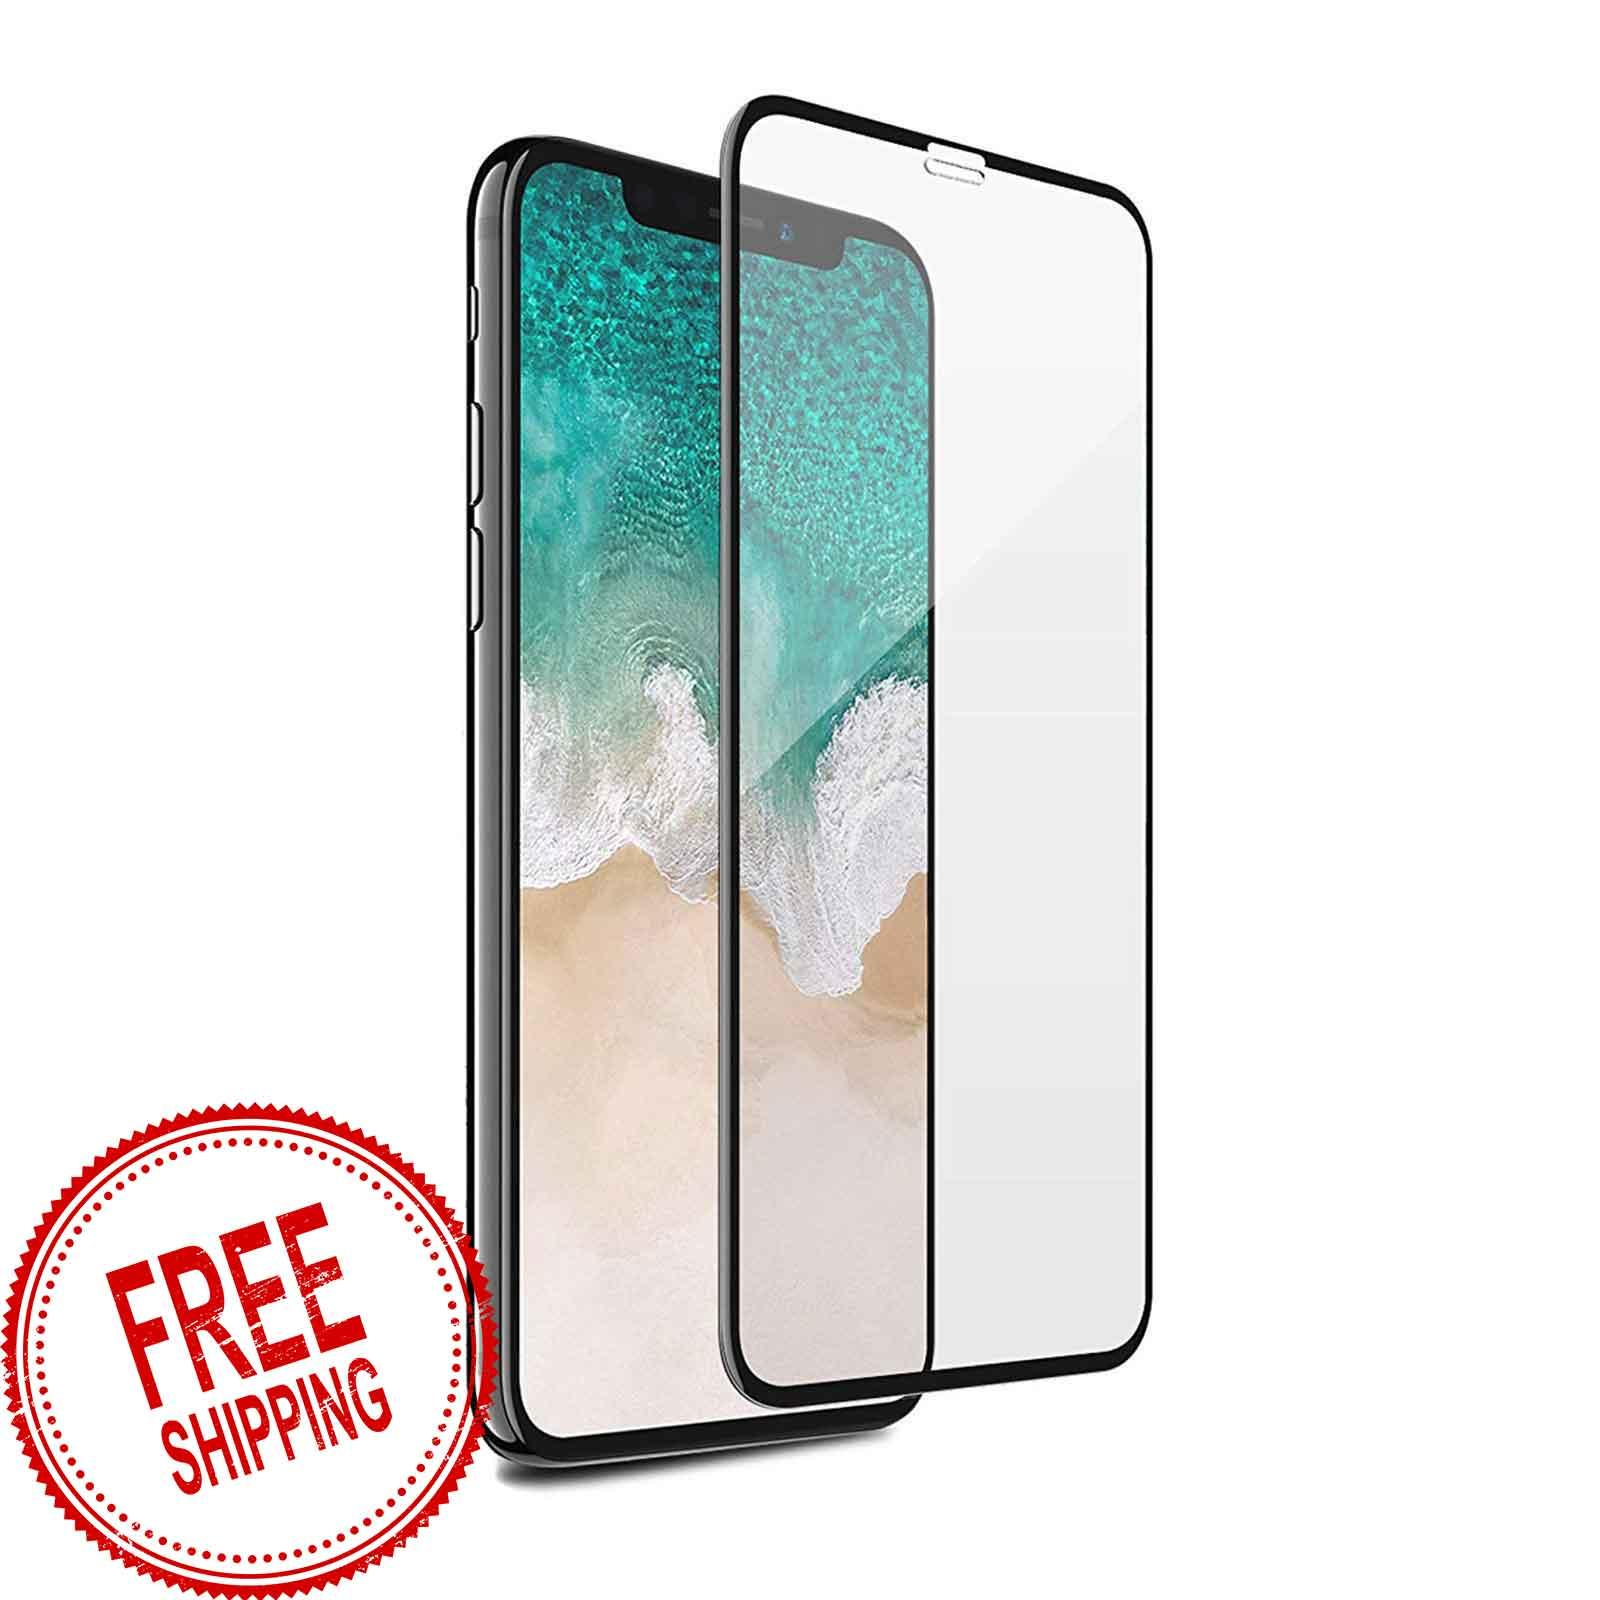 Screen Protector For Sale Guard Prices Brands Specs In Slim Case Matte Black Babyskin Xiaomi Redmi 5 Plus 5plus New Hot Type 25d Tempered Glass Iphone X Xs Xr